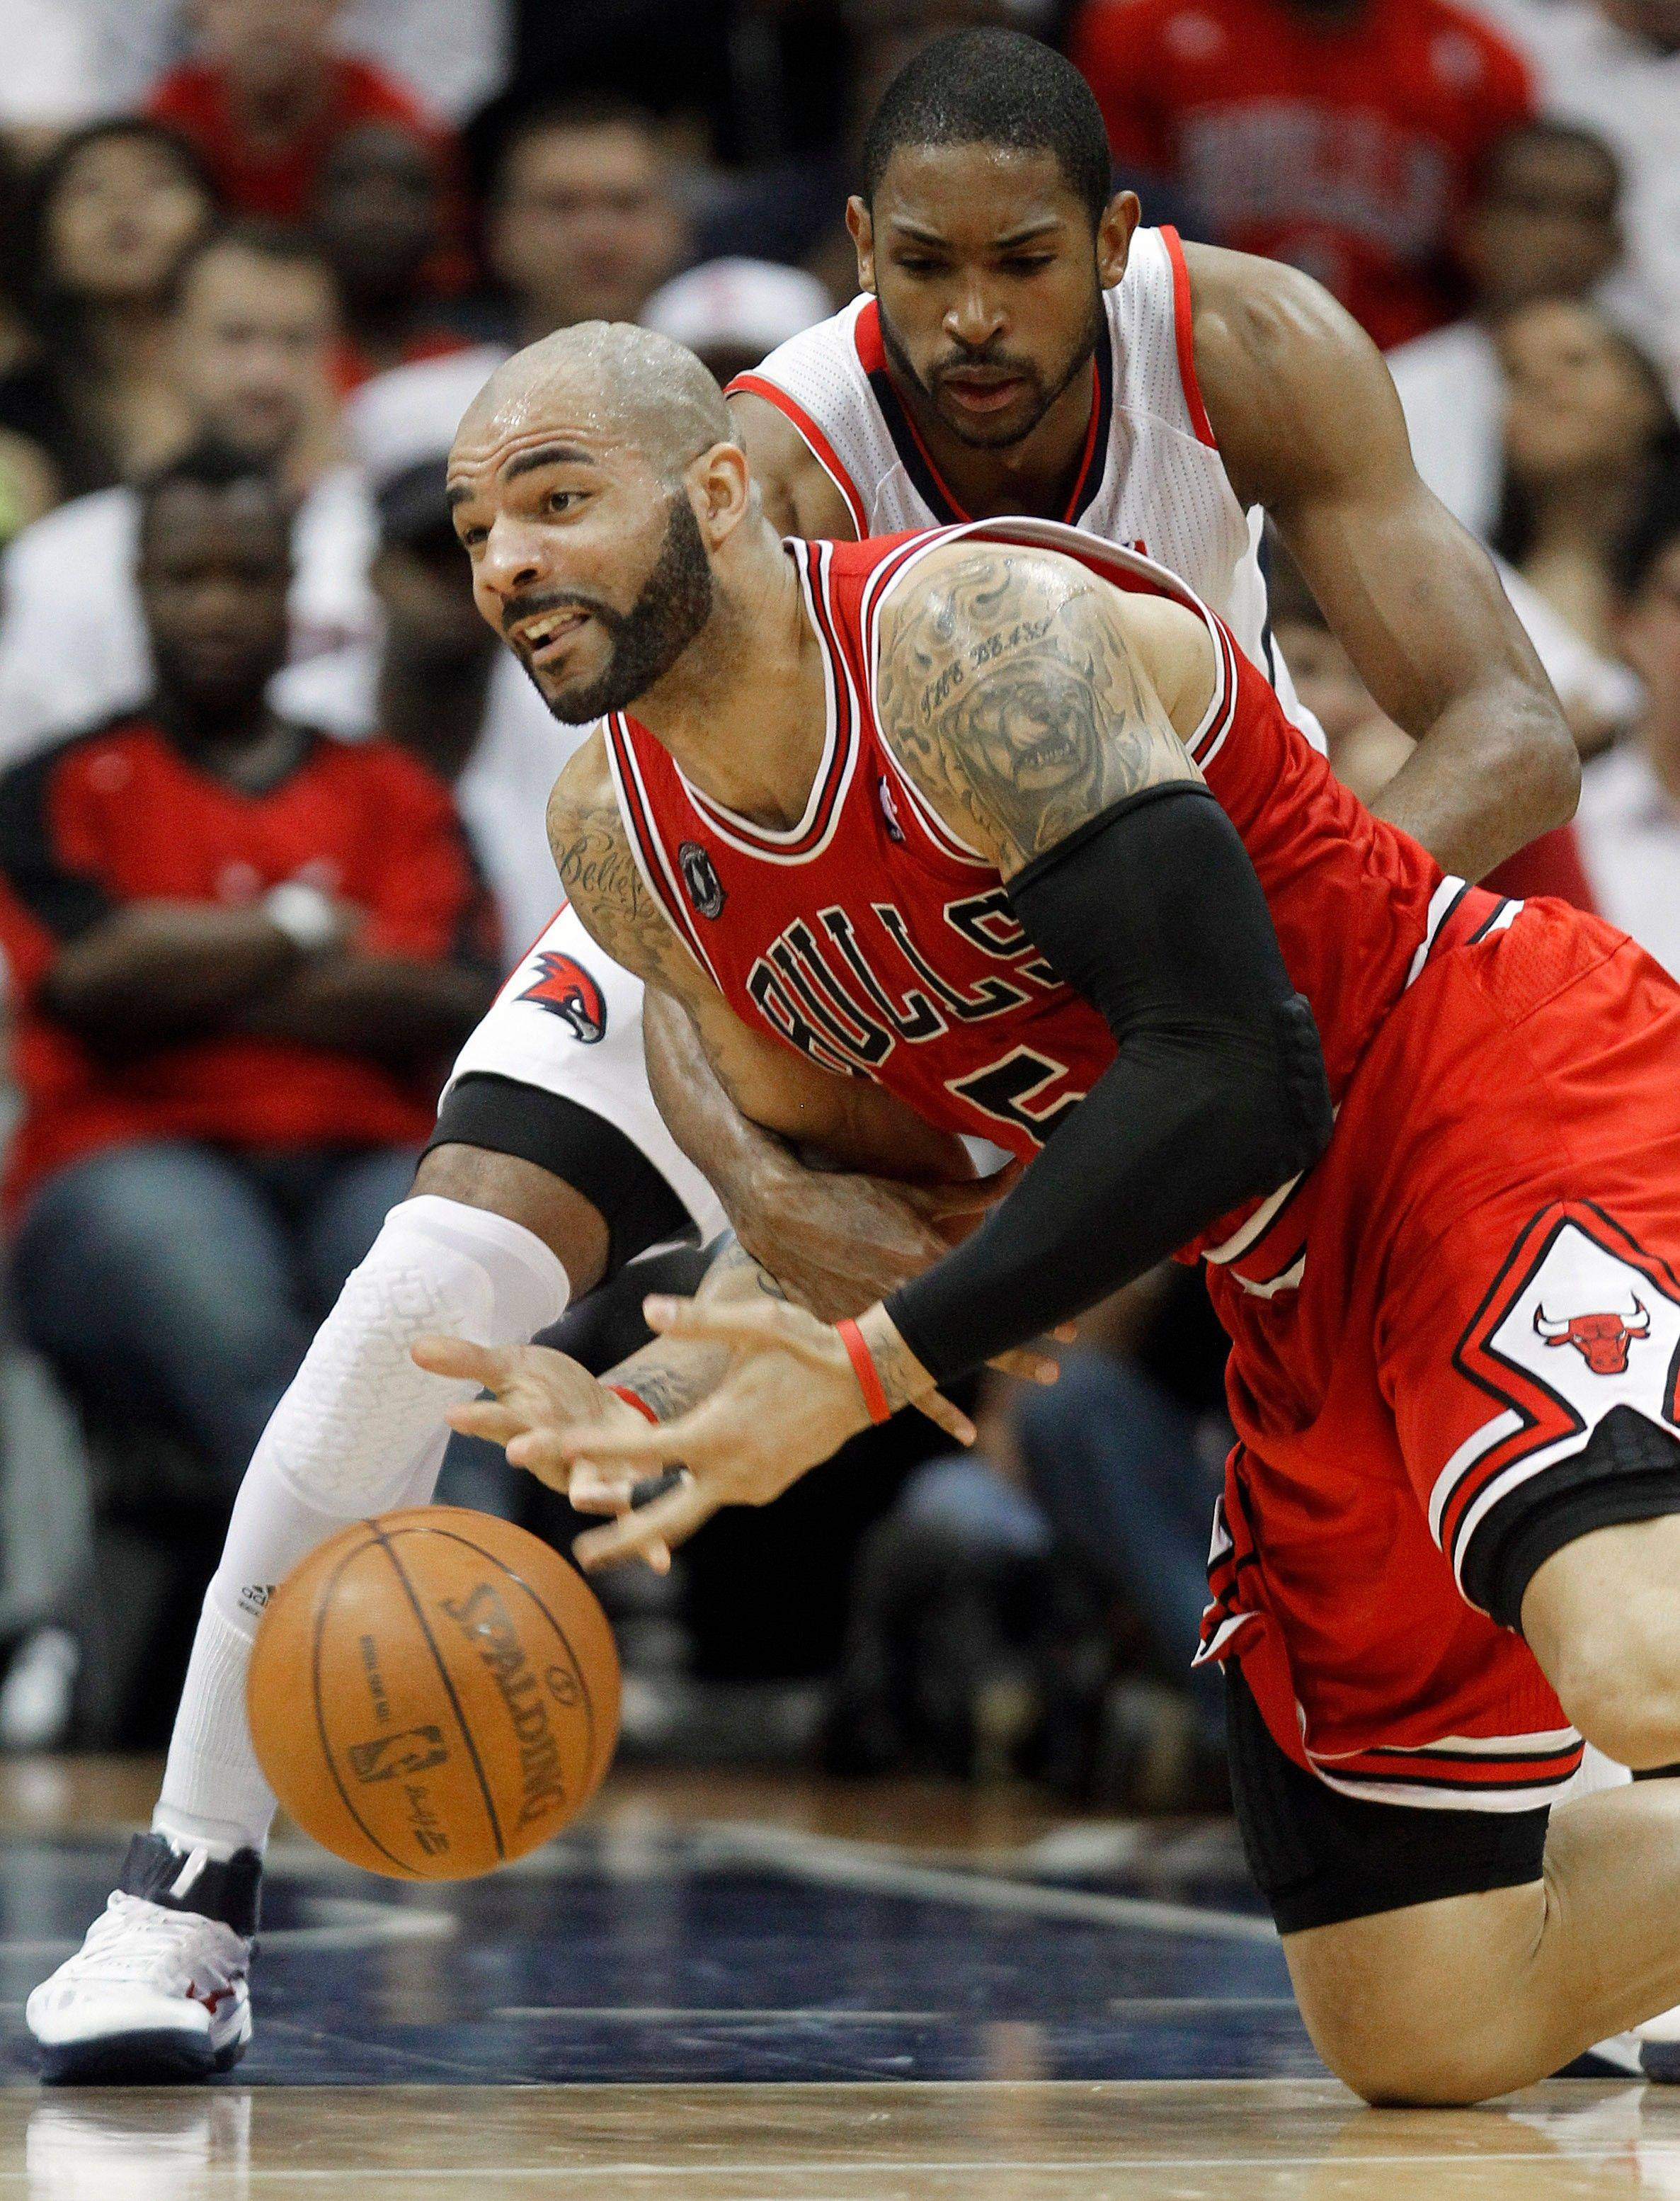 Chicago Bulls forward Carlos Boozer battles Atlanta Hawks forward Al Horford for a loose ball in the second quarter of Game 6.